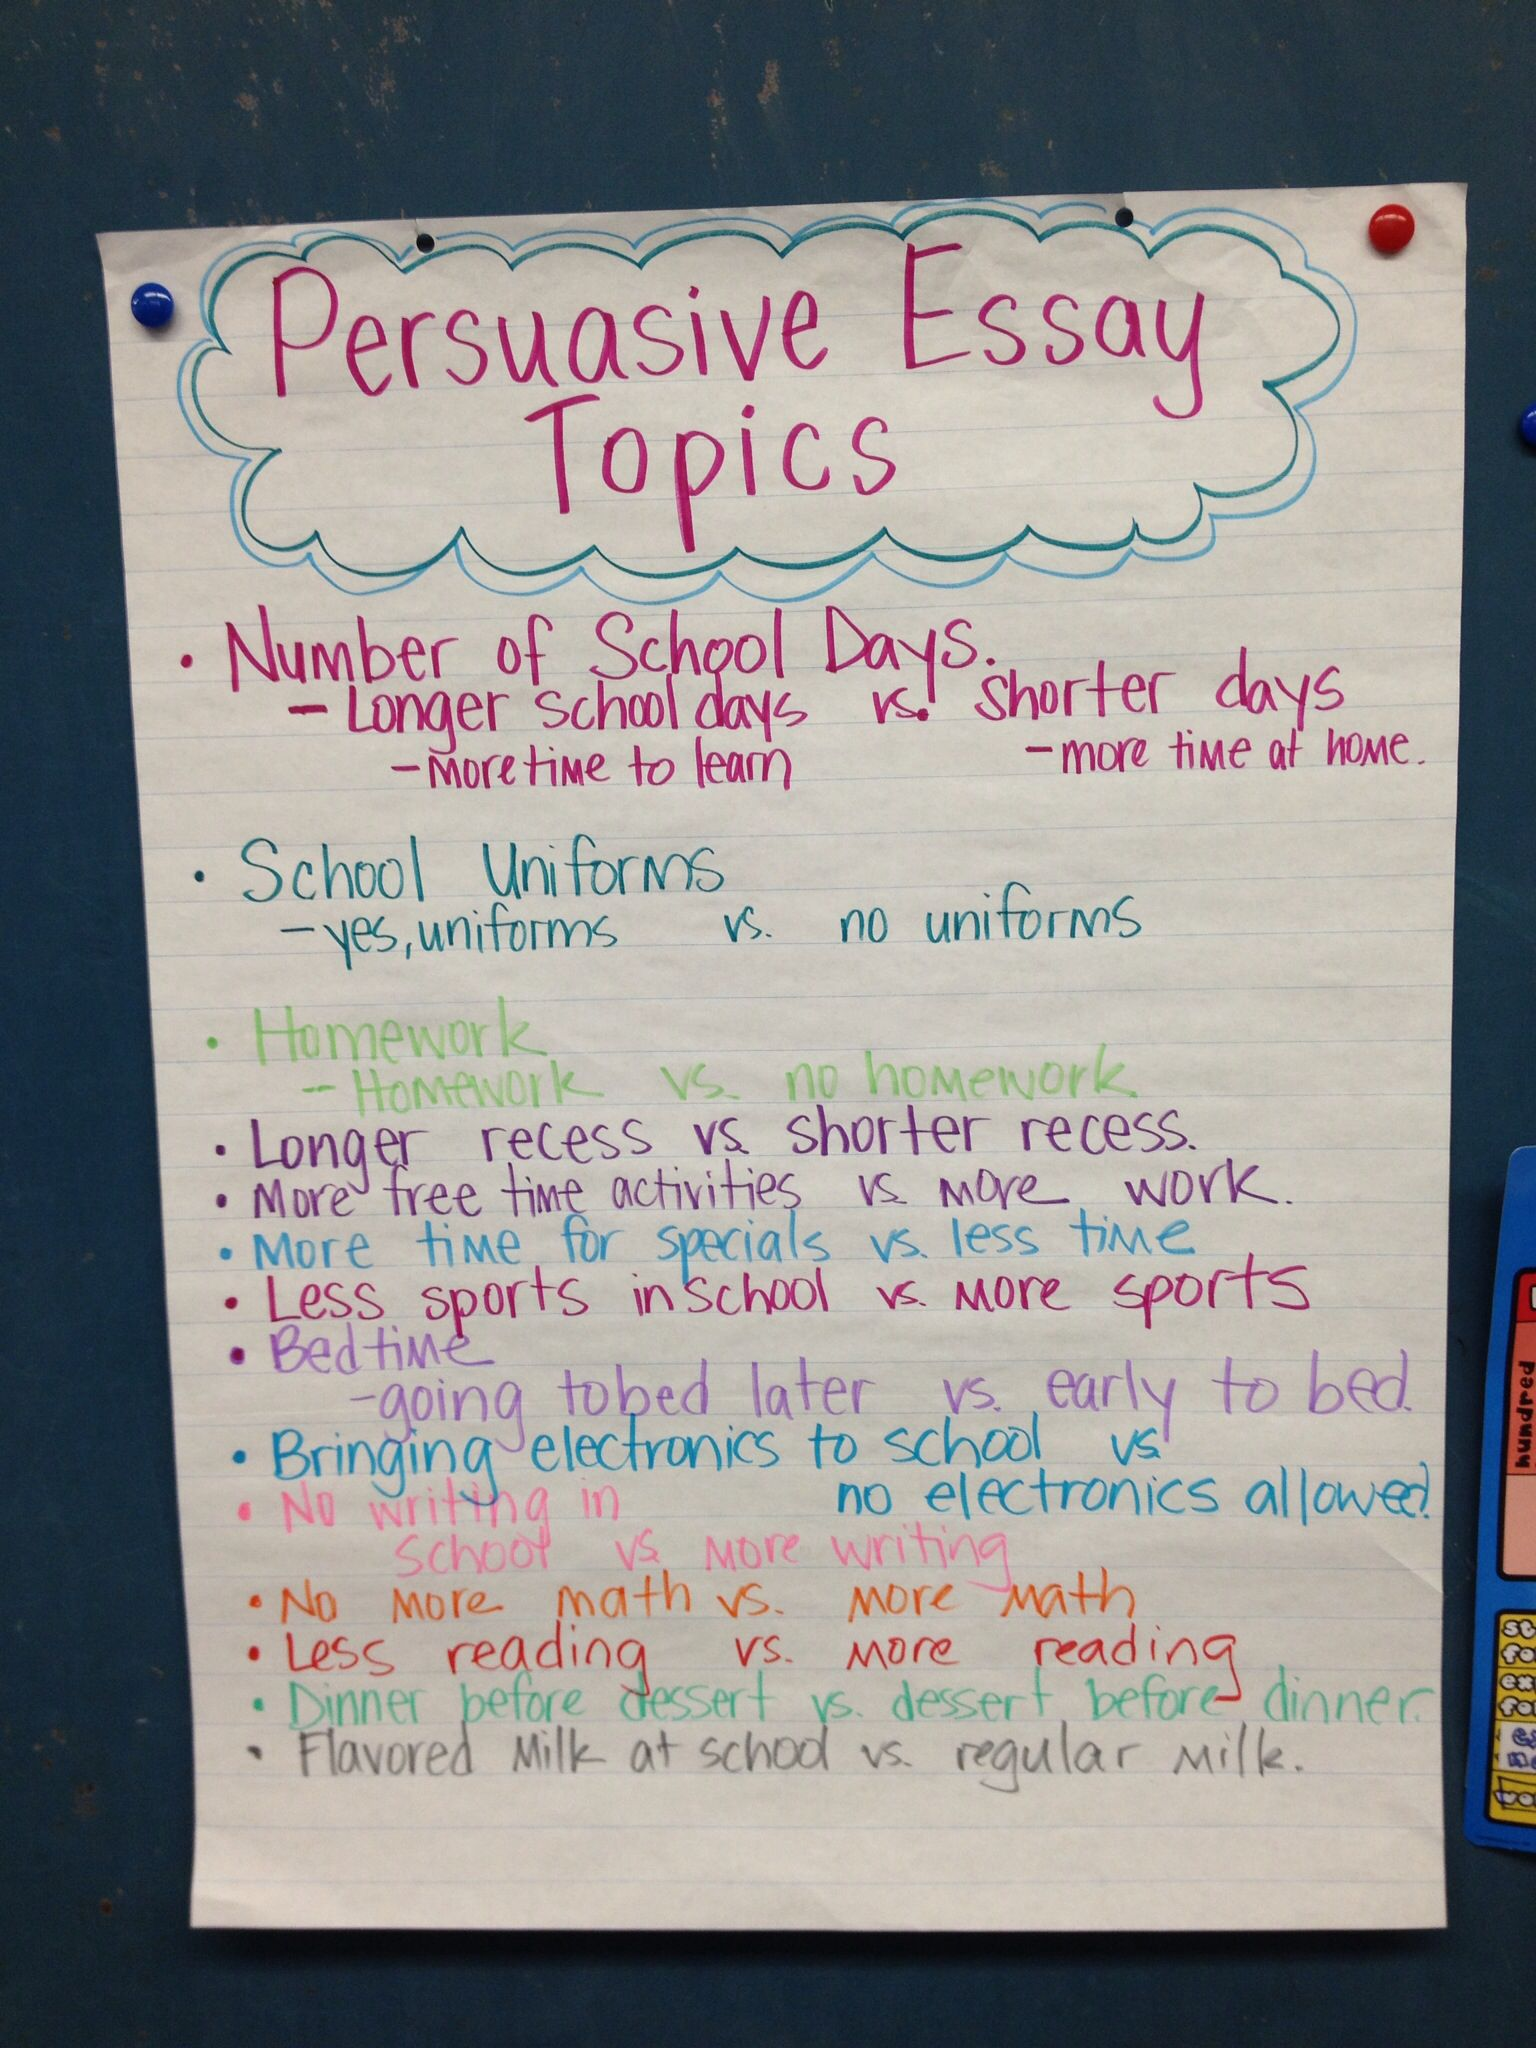 topic ideas for persuasive essay